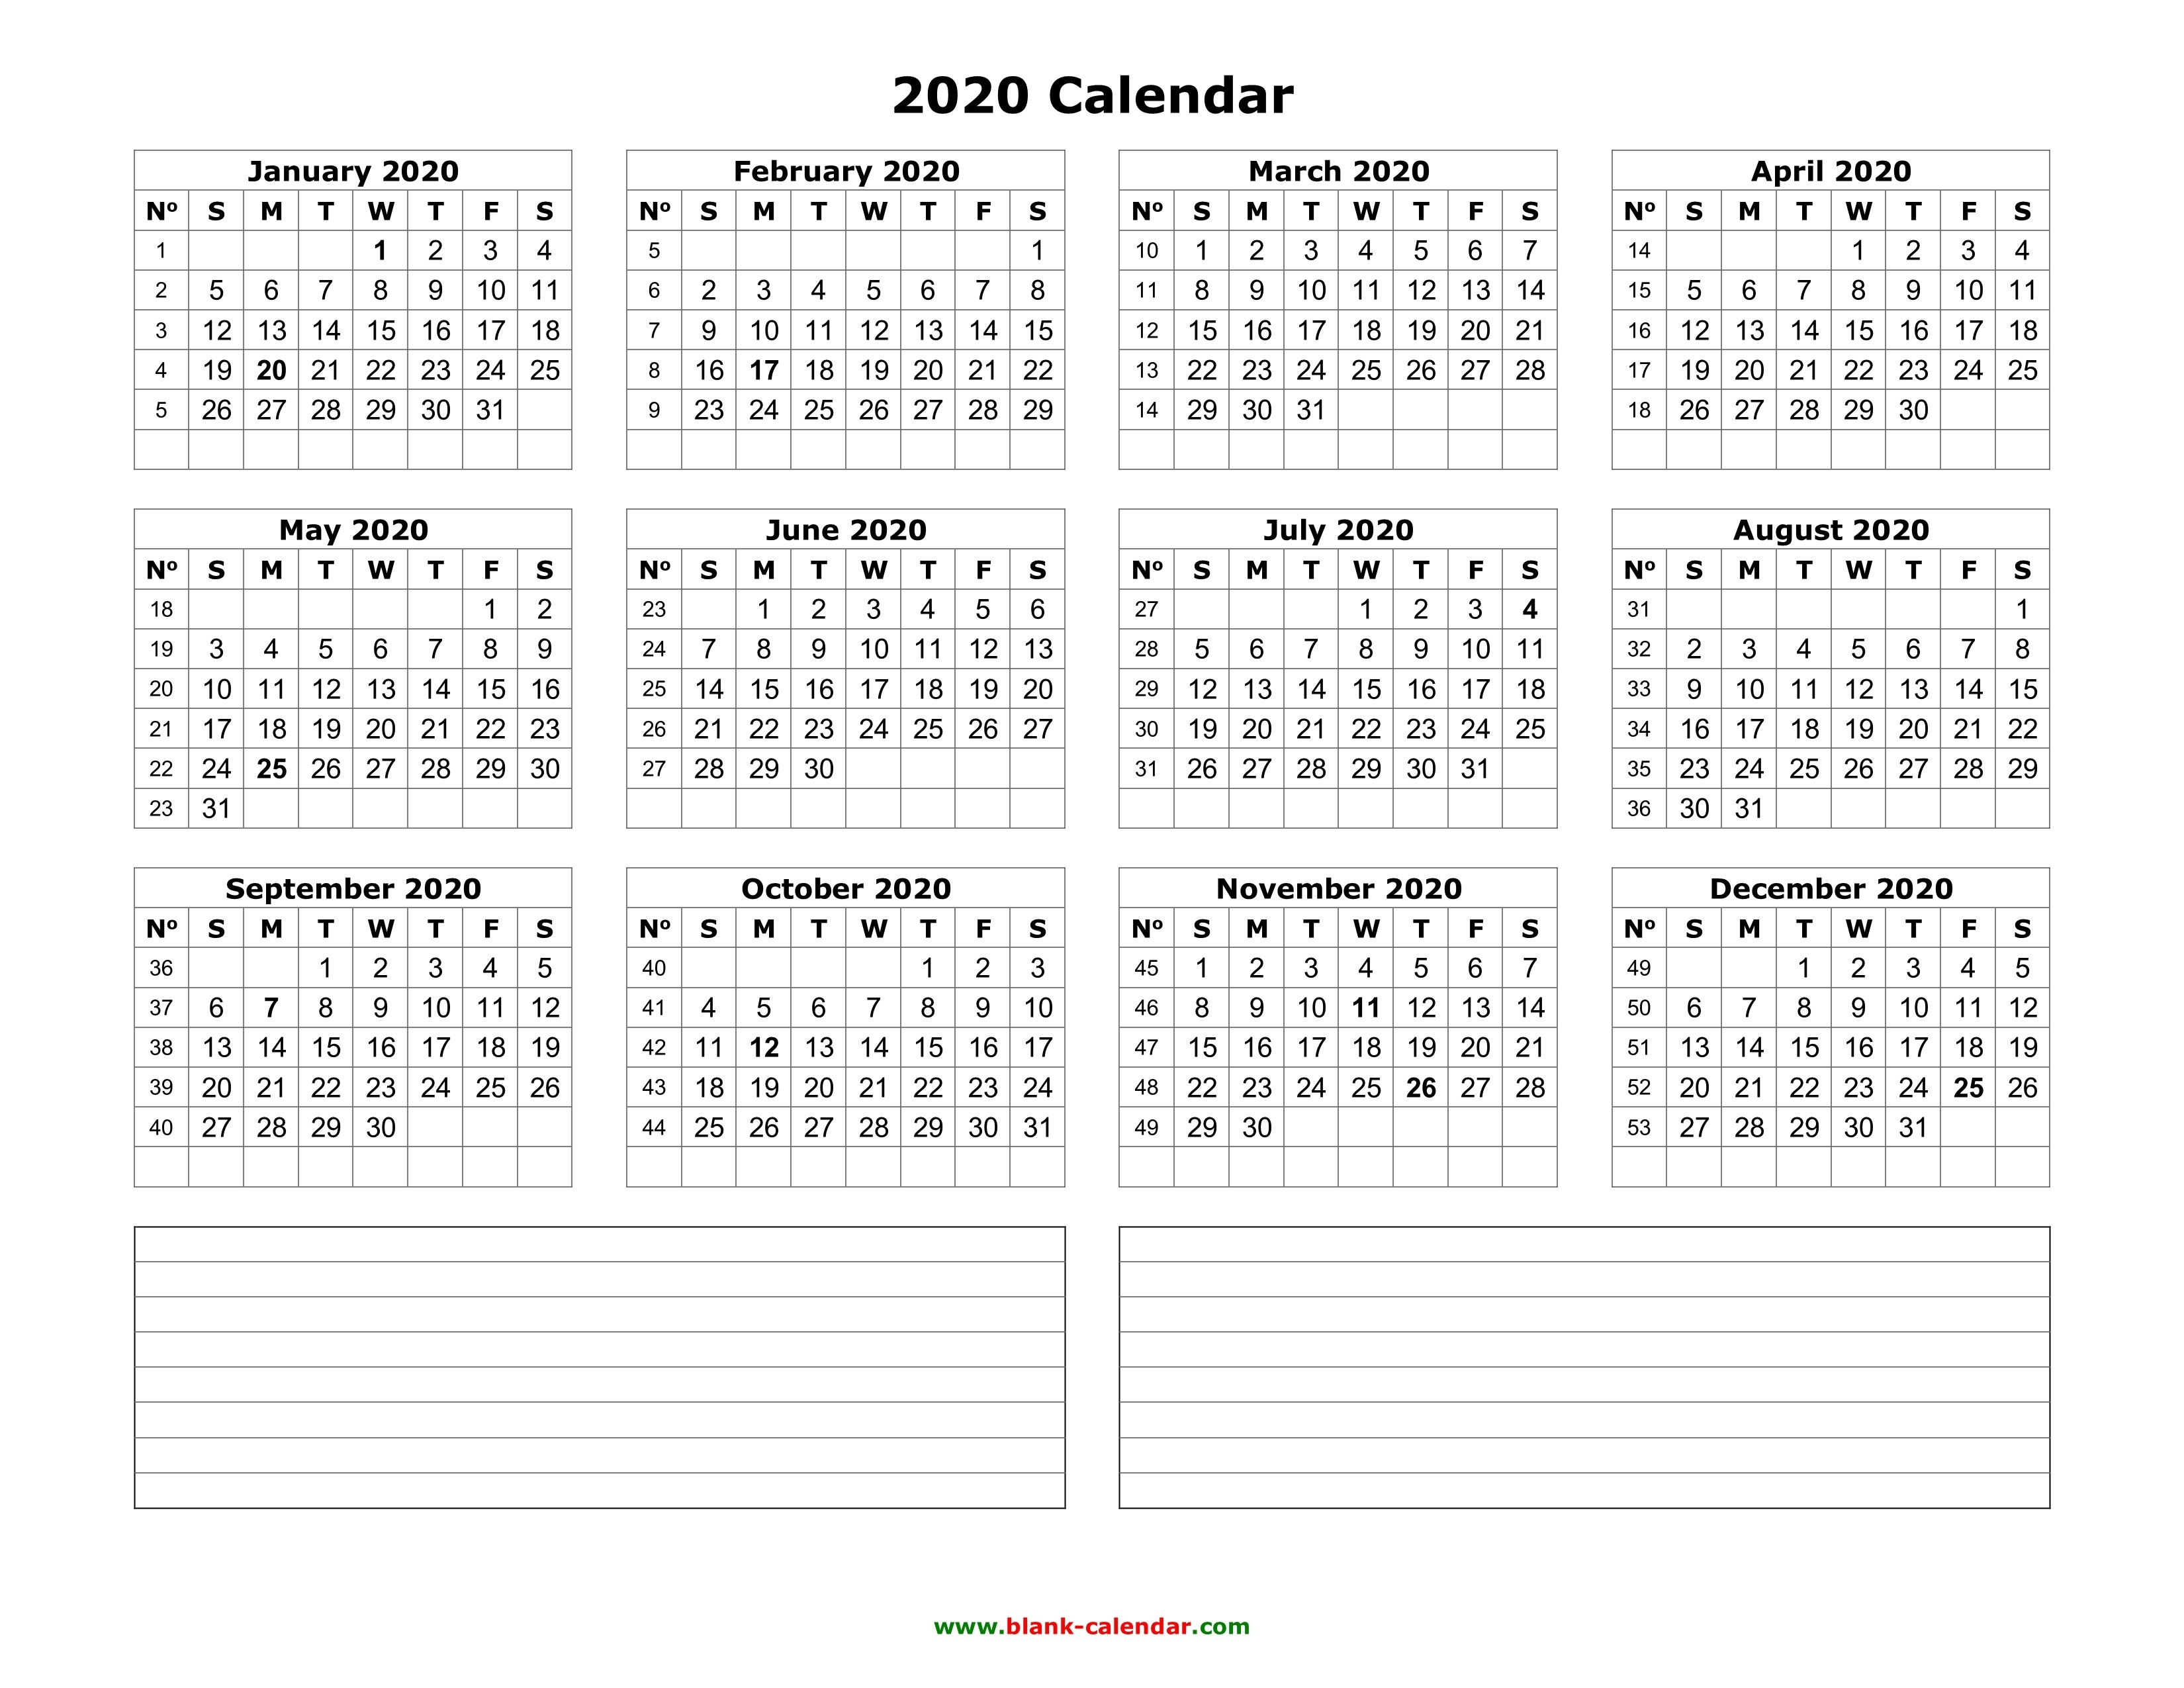 Yearly Calendar 2020 | Free Download And Print-January - June 2020 Calendar